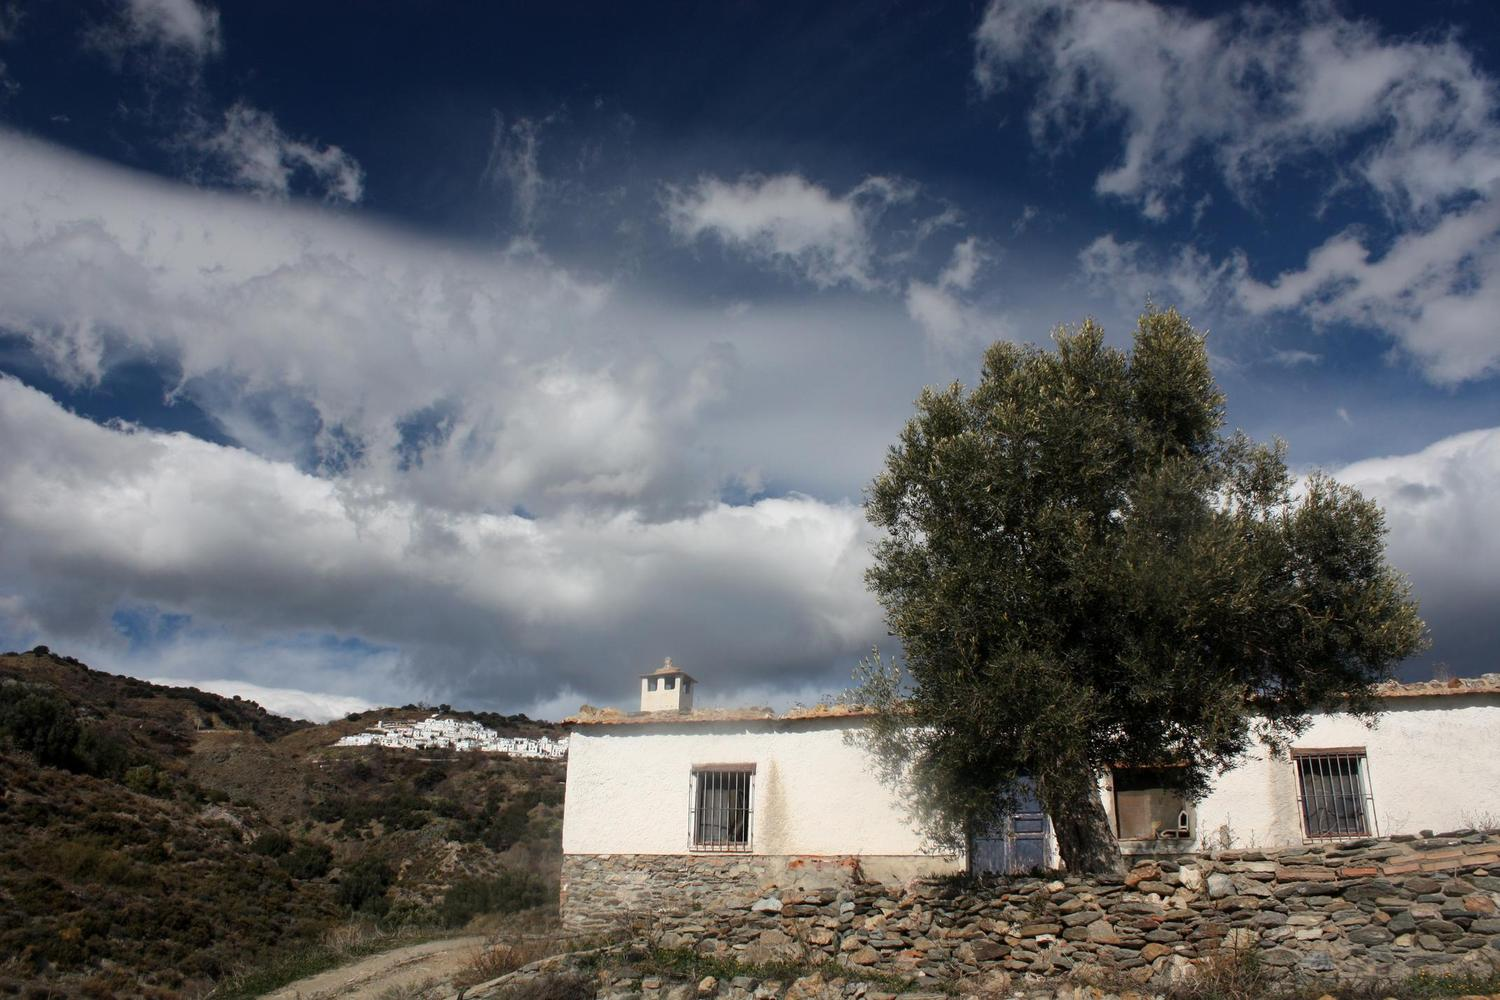 Looking back up from olive groves towards Mairena village in the Alpujarras